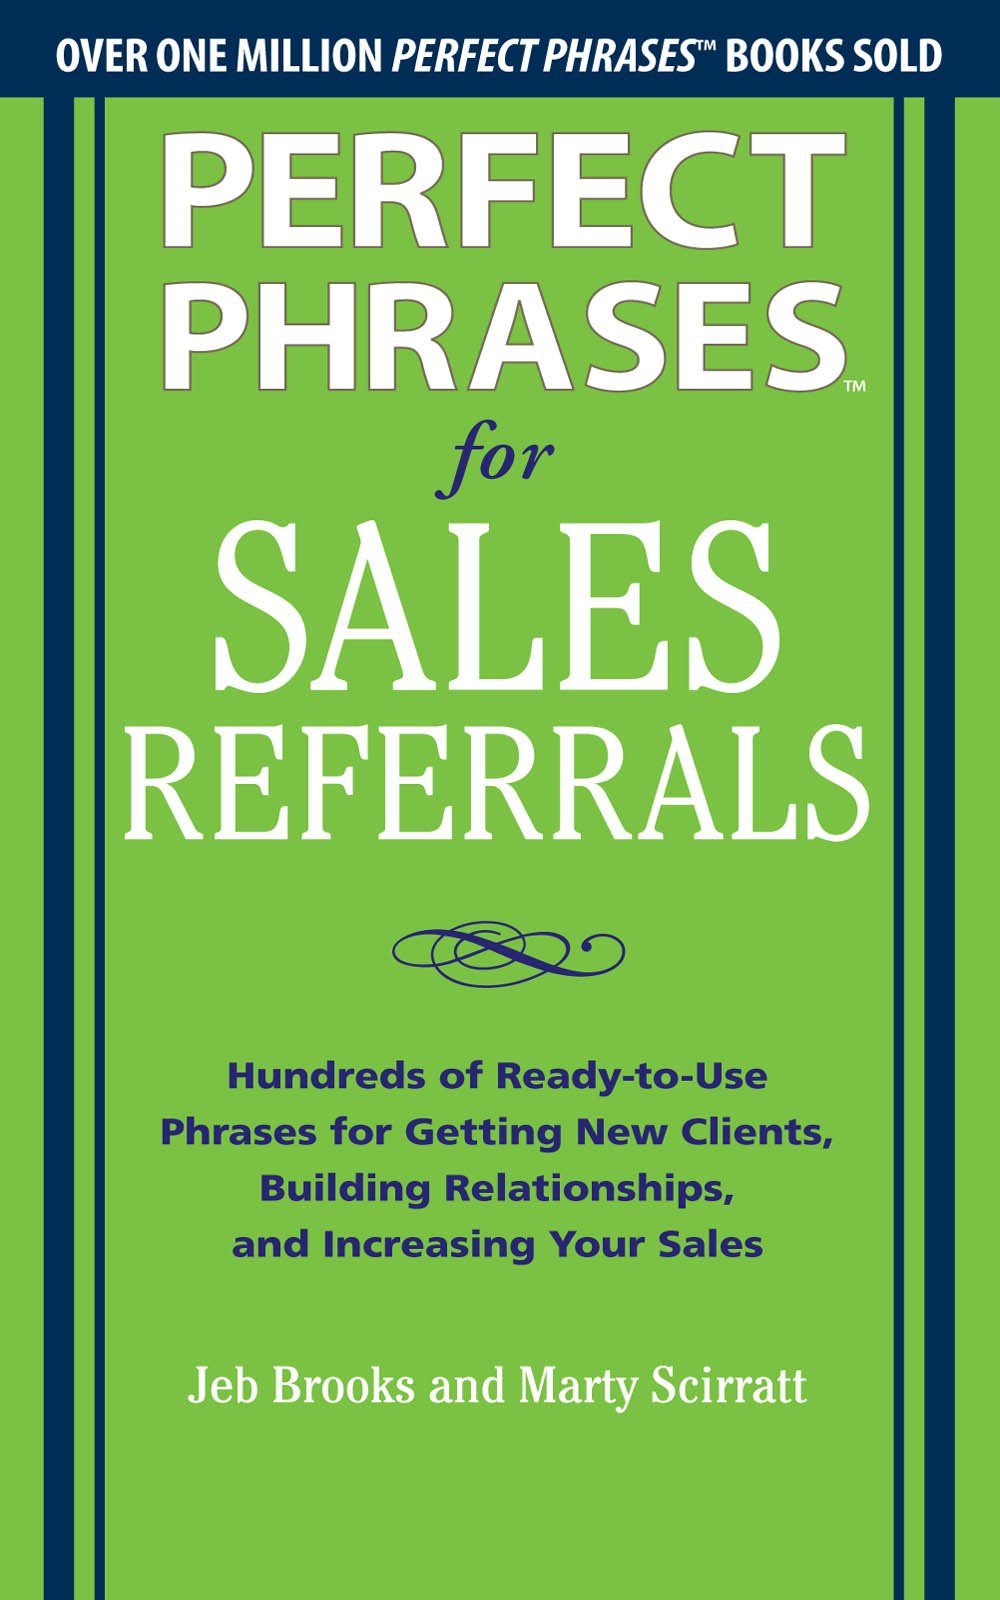 Perfect Phrases for Sales Referrals: Hundreds of Ready-to-Use Phrases for Getting New Clients, Building Relationships, and Increasing Your Sales: Hundreds ... Relationships, Increasing Your Sales